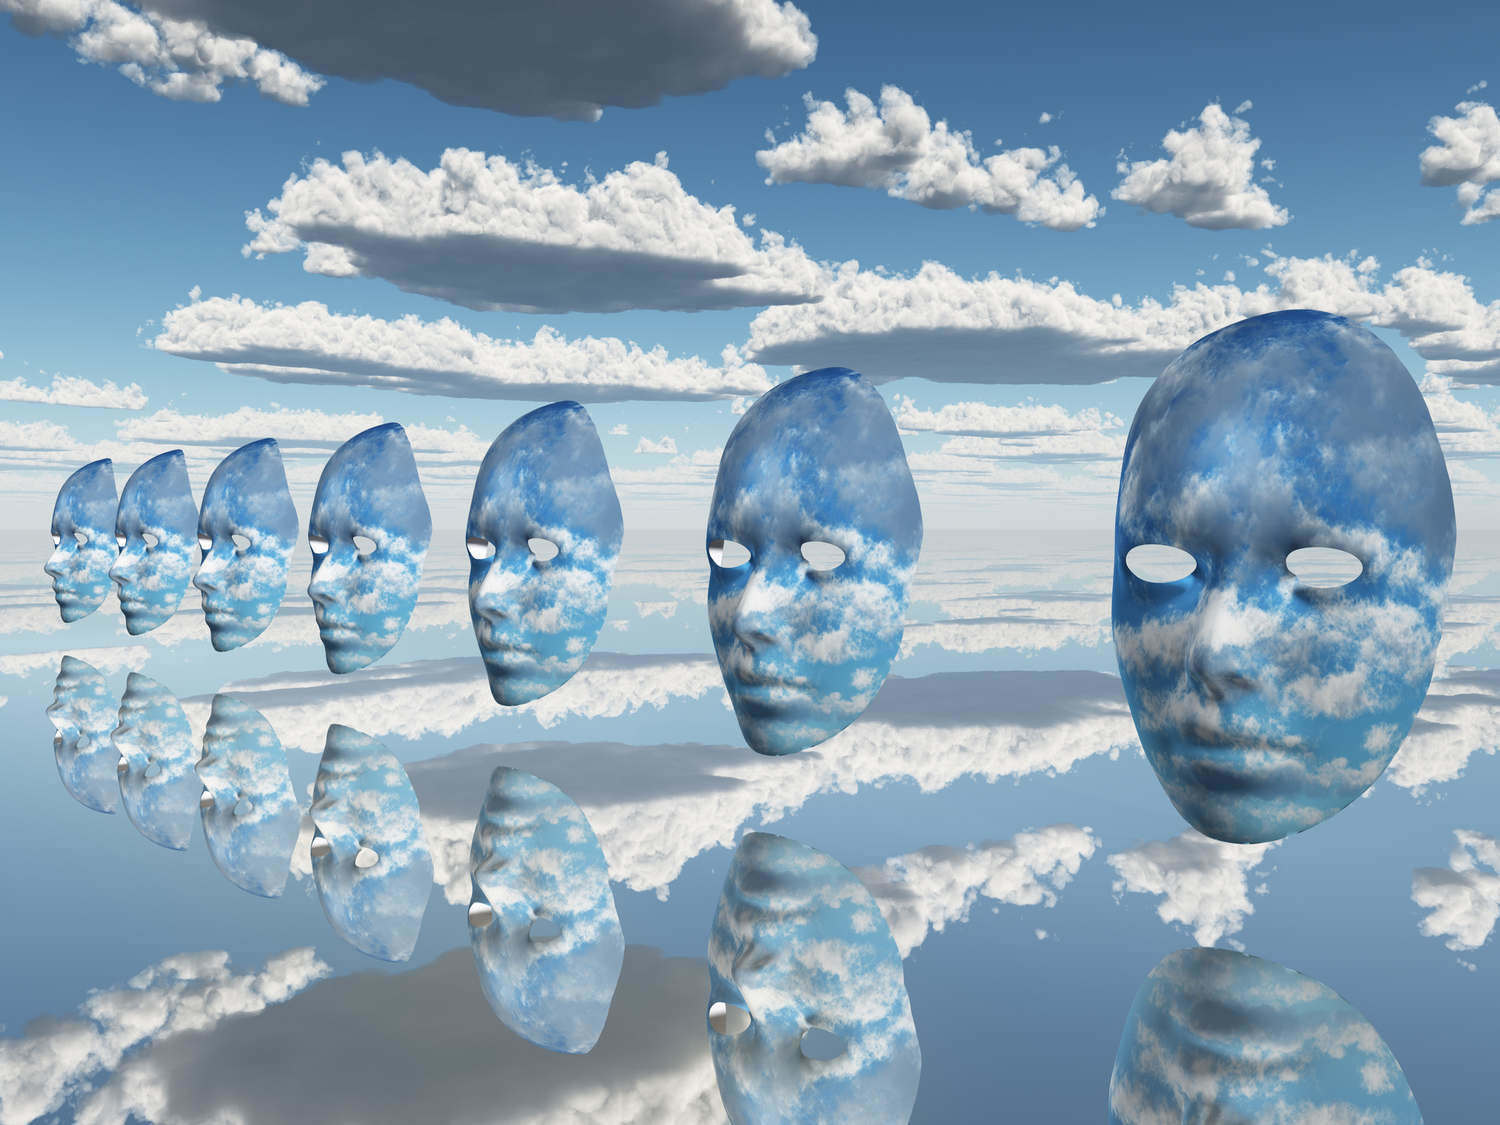 Masks of faces repeated in clouds